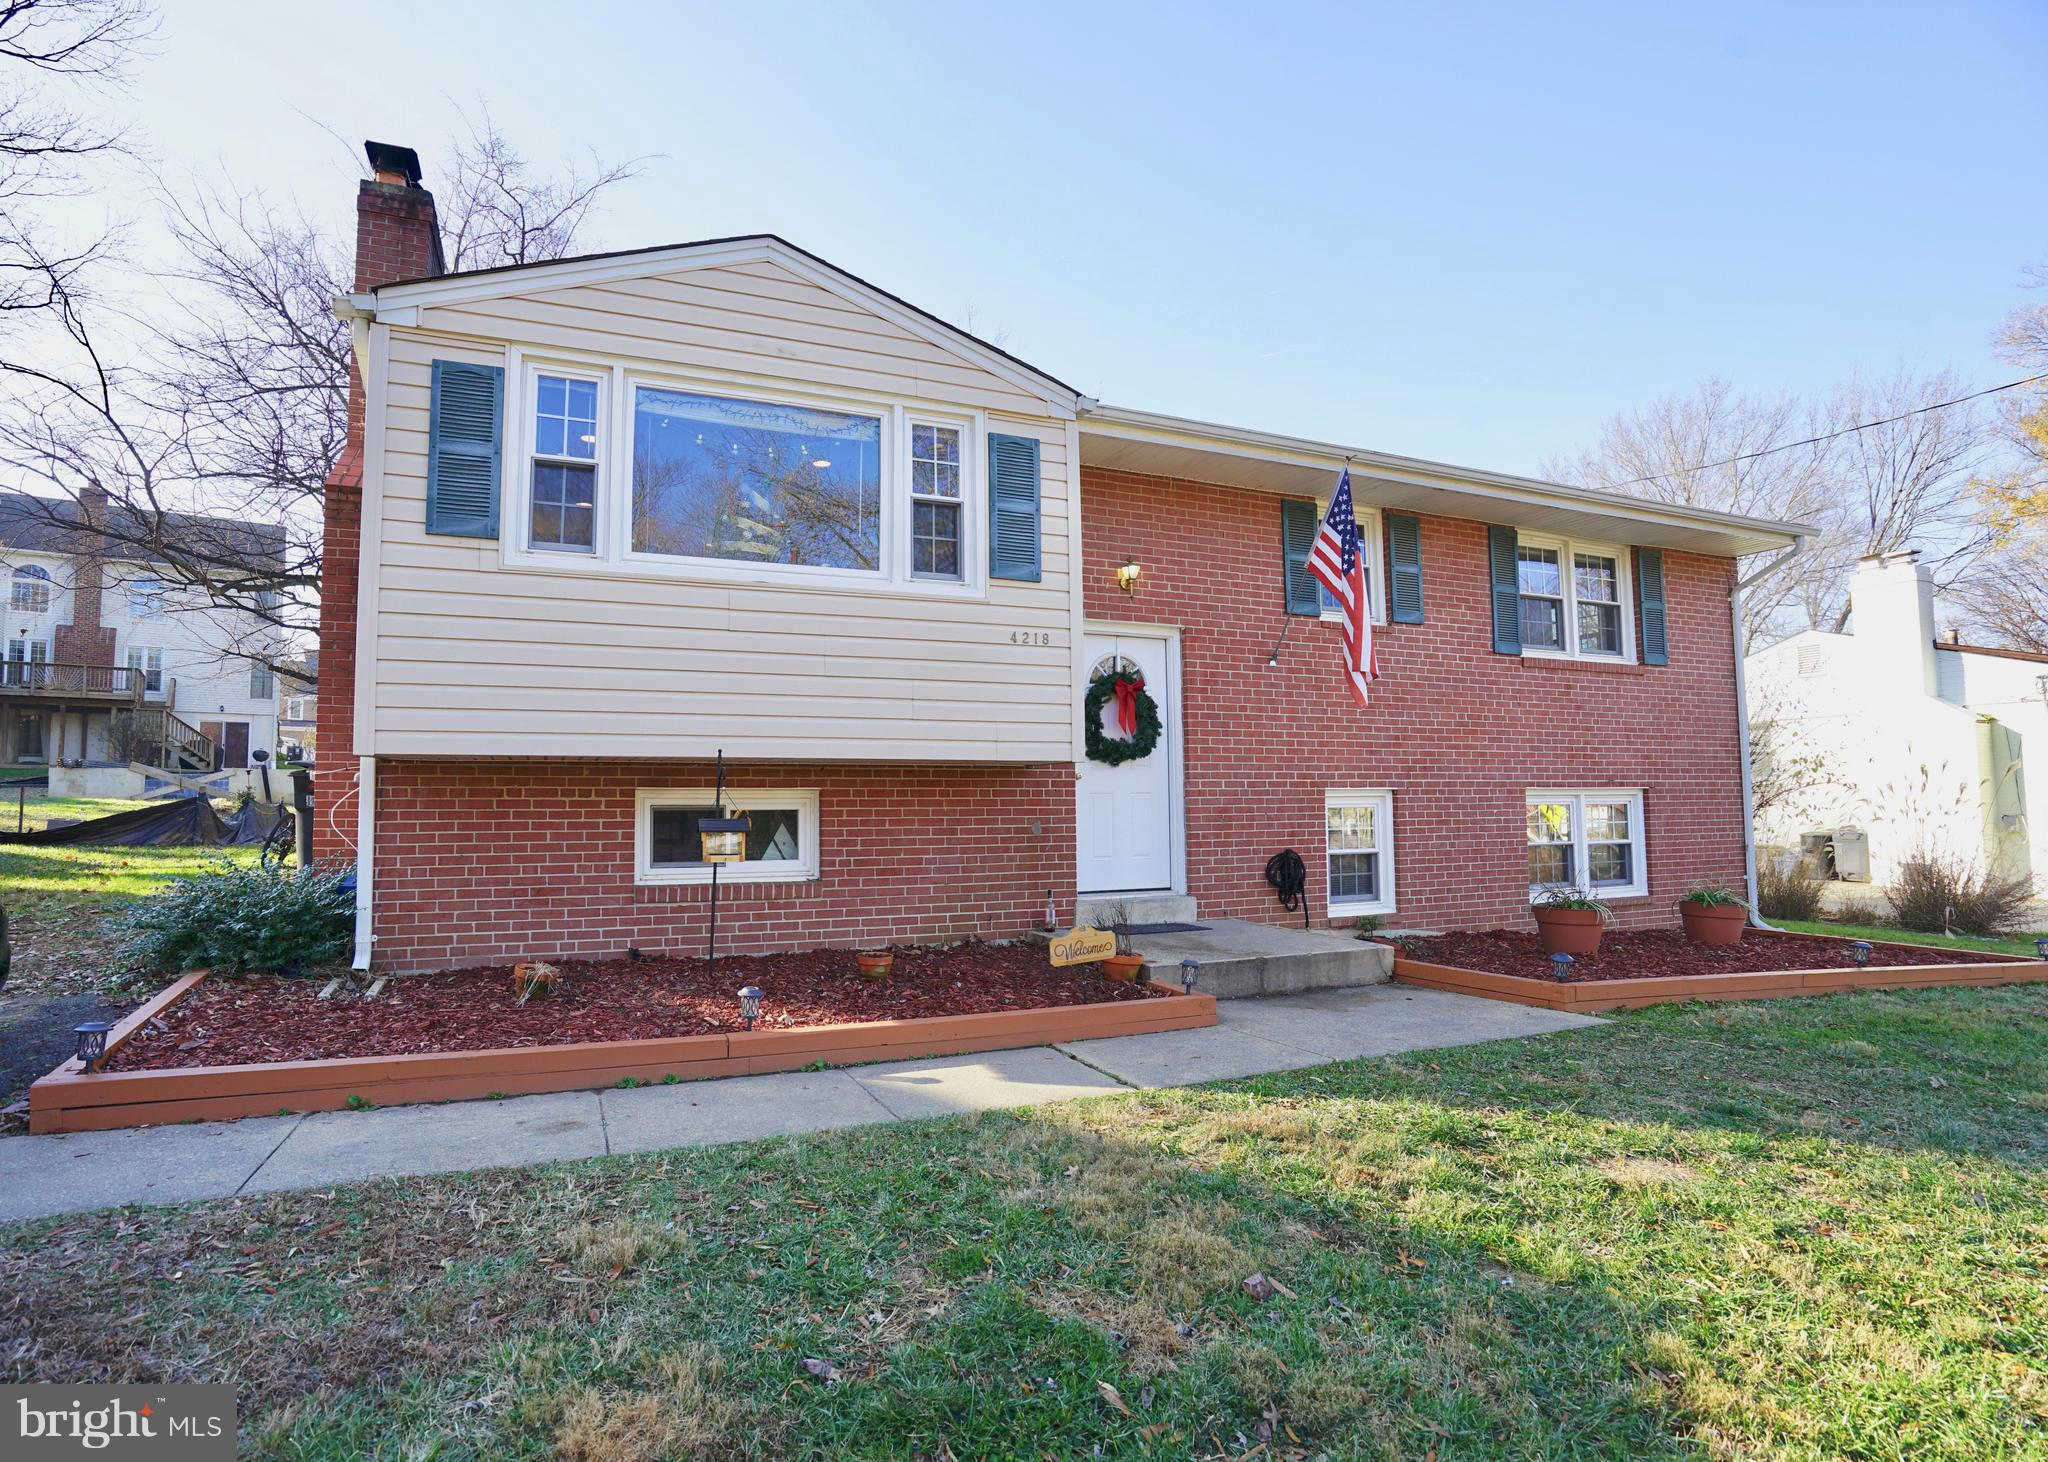 Beautifully remodeled 2 level home in Fairfax City! Only $3100/month! Open layout, filled with natural light. Kitchen and all bathrooms have been completely updated. Hardwood floors throughout. Full size washer/dryer. Large storage room and plenty of closet space throughout. 2 wood burning fireplaces. Basement level media room. Plenty of street parking along with the attached driveway. 4 bedrooms, 3 full bathrooms & XL backyard PRIME location - quick walk to George Mason University, Old Town Fairfax, public transportation. Commuter's dream!Perfect for multiple GMU students / young professionals to sharePet friendly